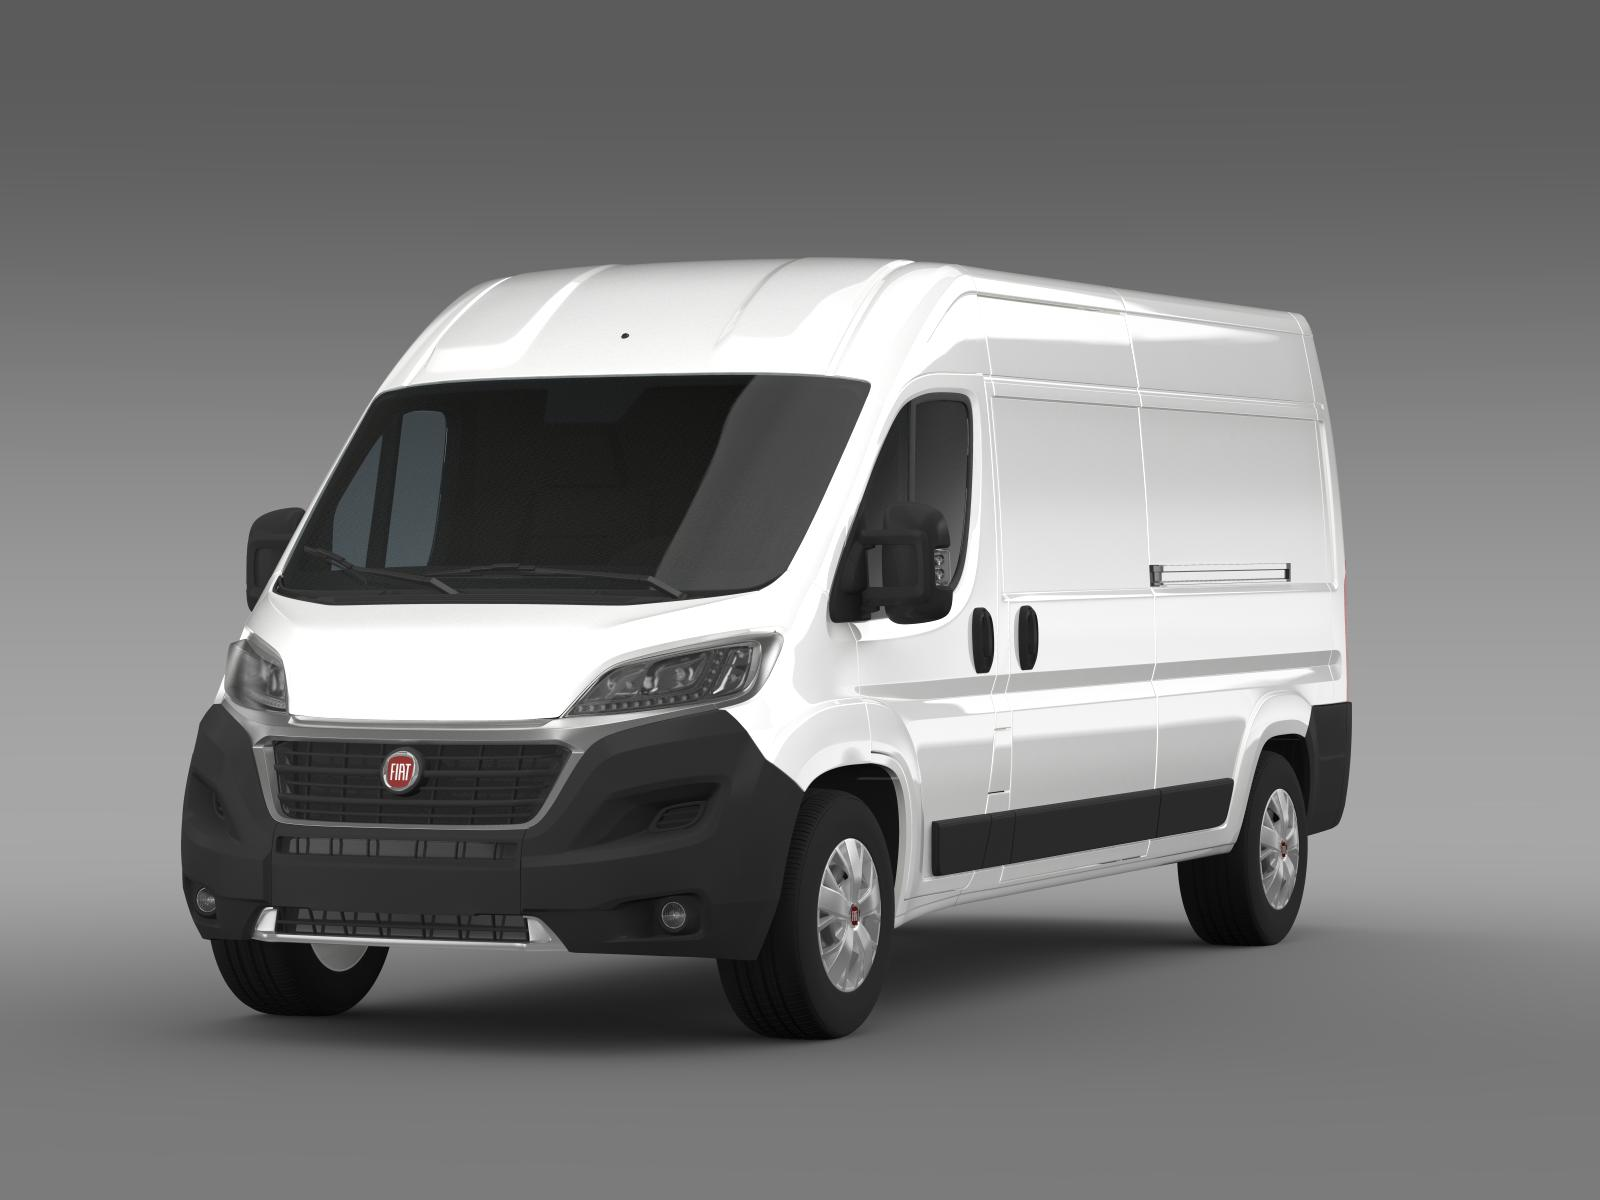 fiat ducato van l3h2 2015 3d model buy fiat ducato van. Black Bedroom Furniture Sets. Home Design Ideas